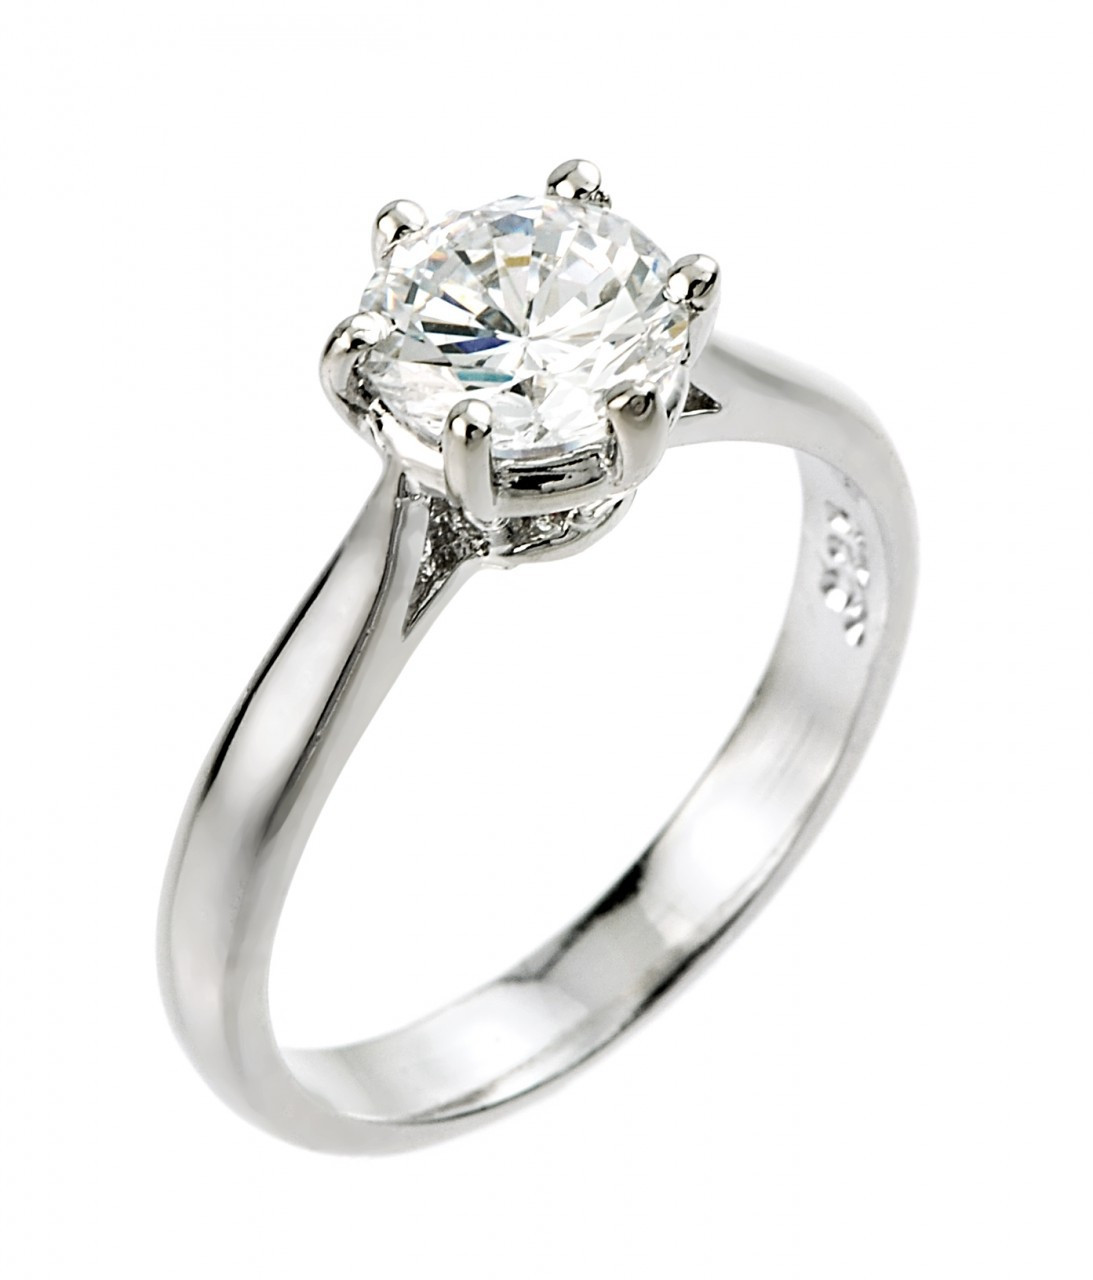 Engagement Ring Cz Engagement Ring White Gold Cz Engagement Ring